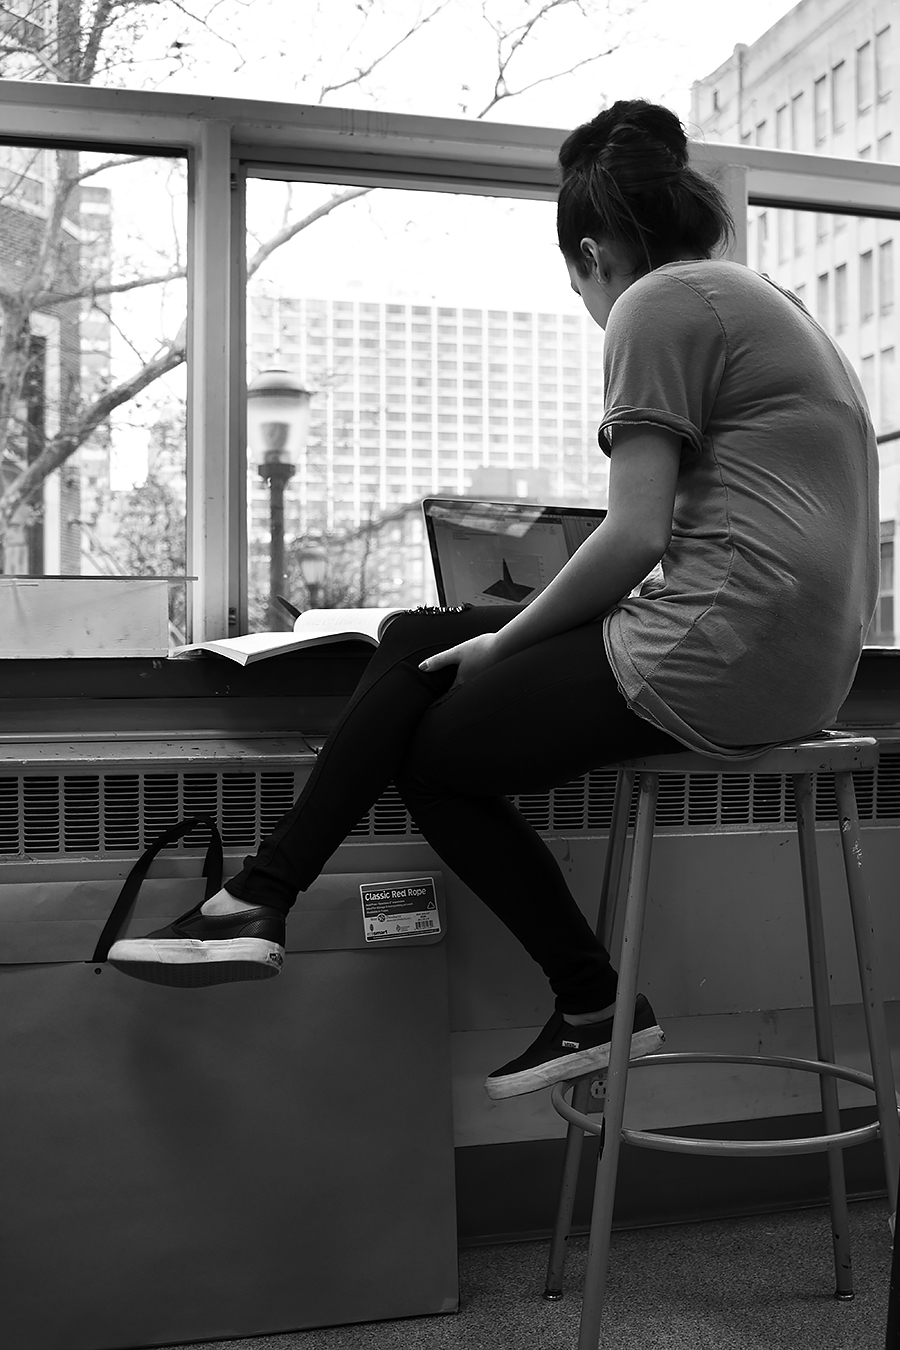 Tyler_Ling_photography_finearts_computers_absorbed_engineering_Lauren_Glenn_indoors_Penn_backshot_unaware_black_white